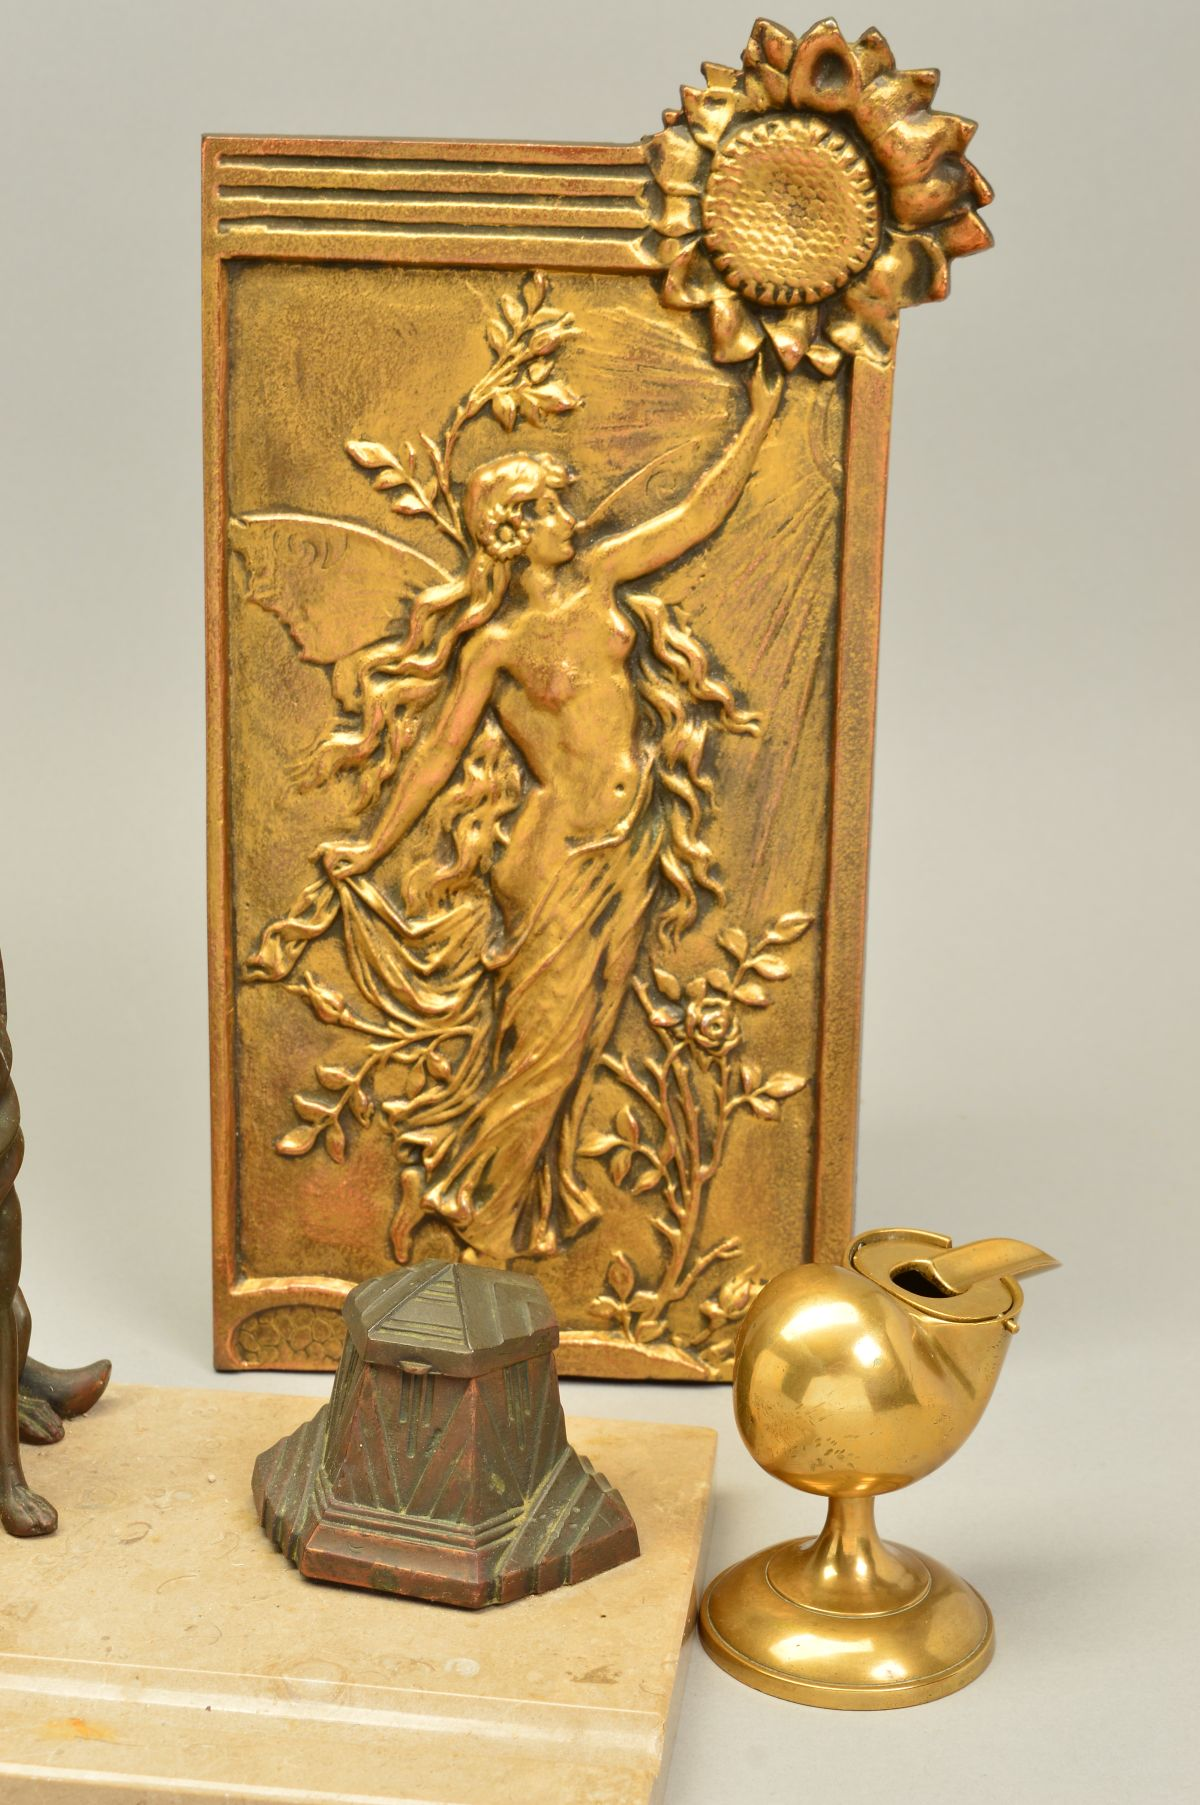 Lot 274 - AN ART DECO DESK STAND, the cafe au lait colour marble mounted with a pair of bronzed spelter